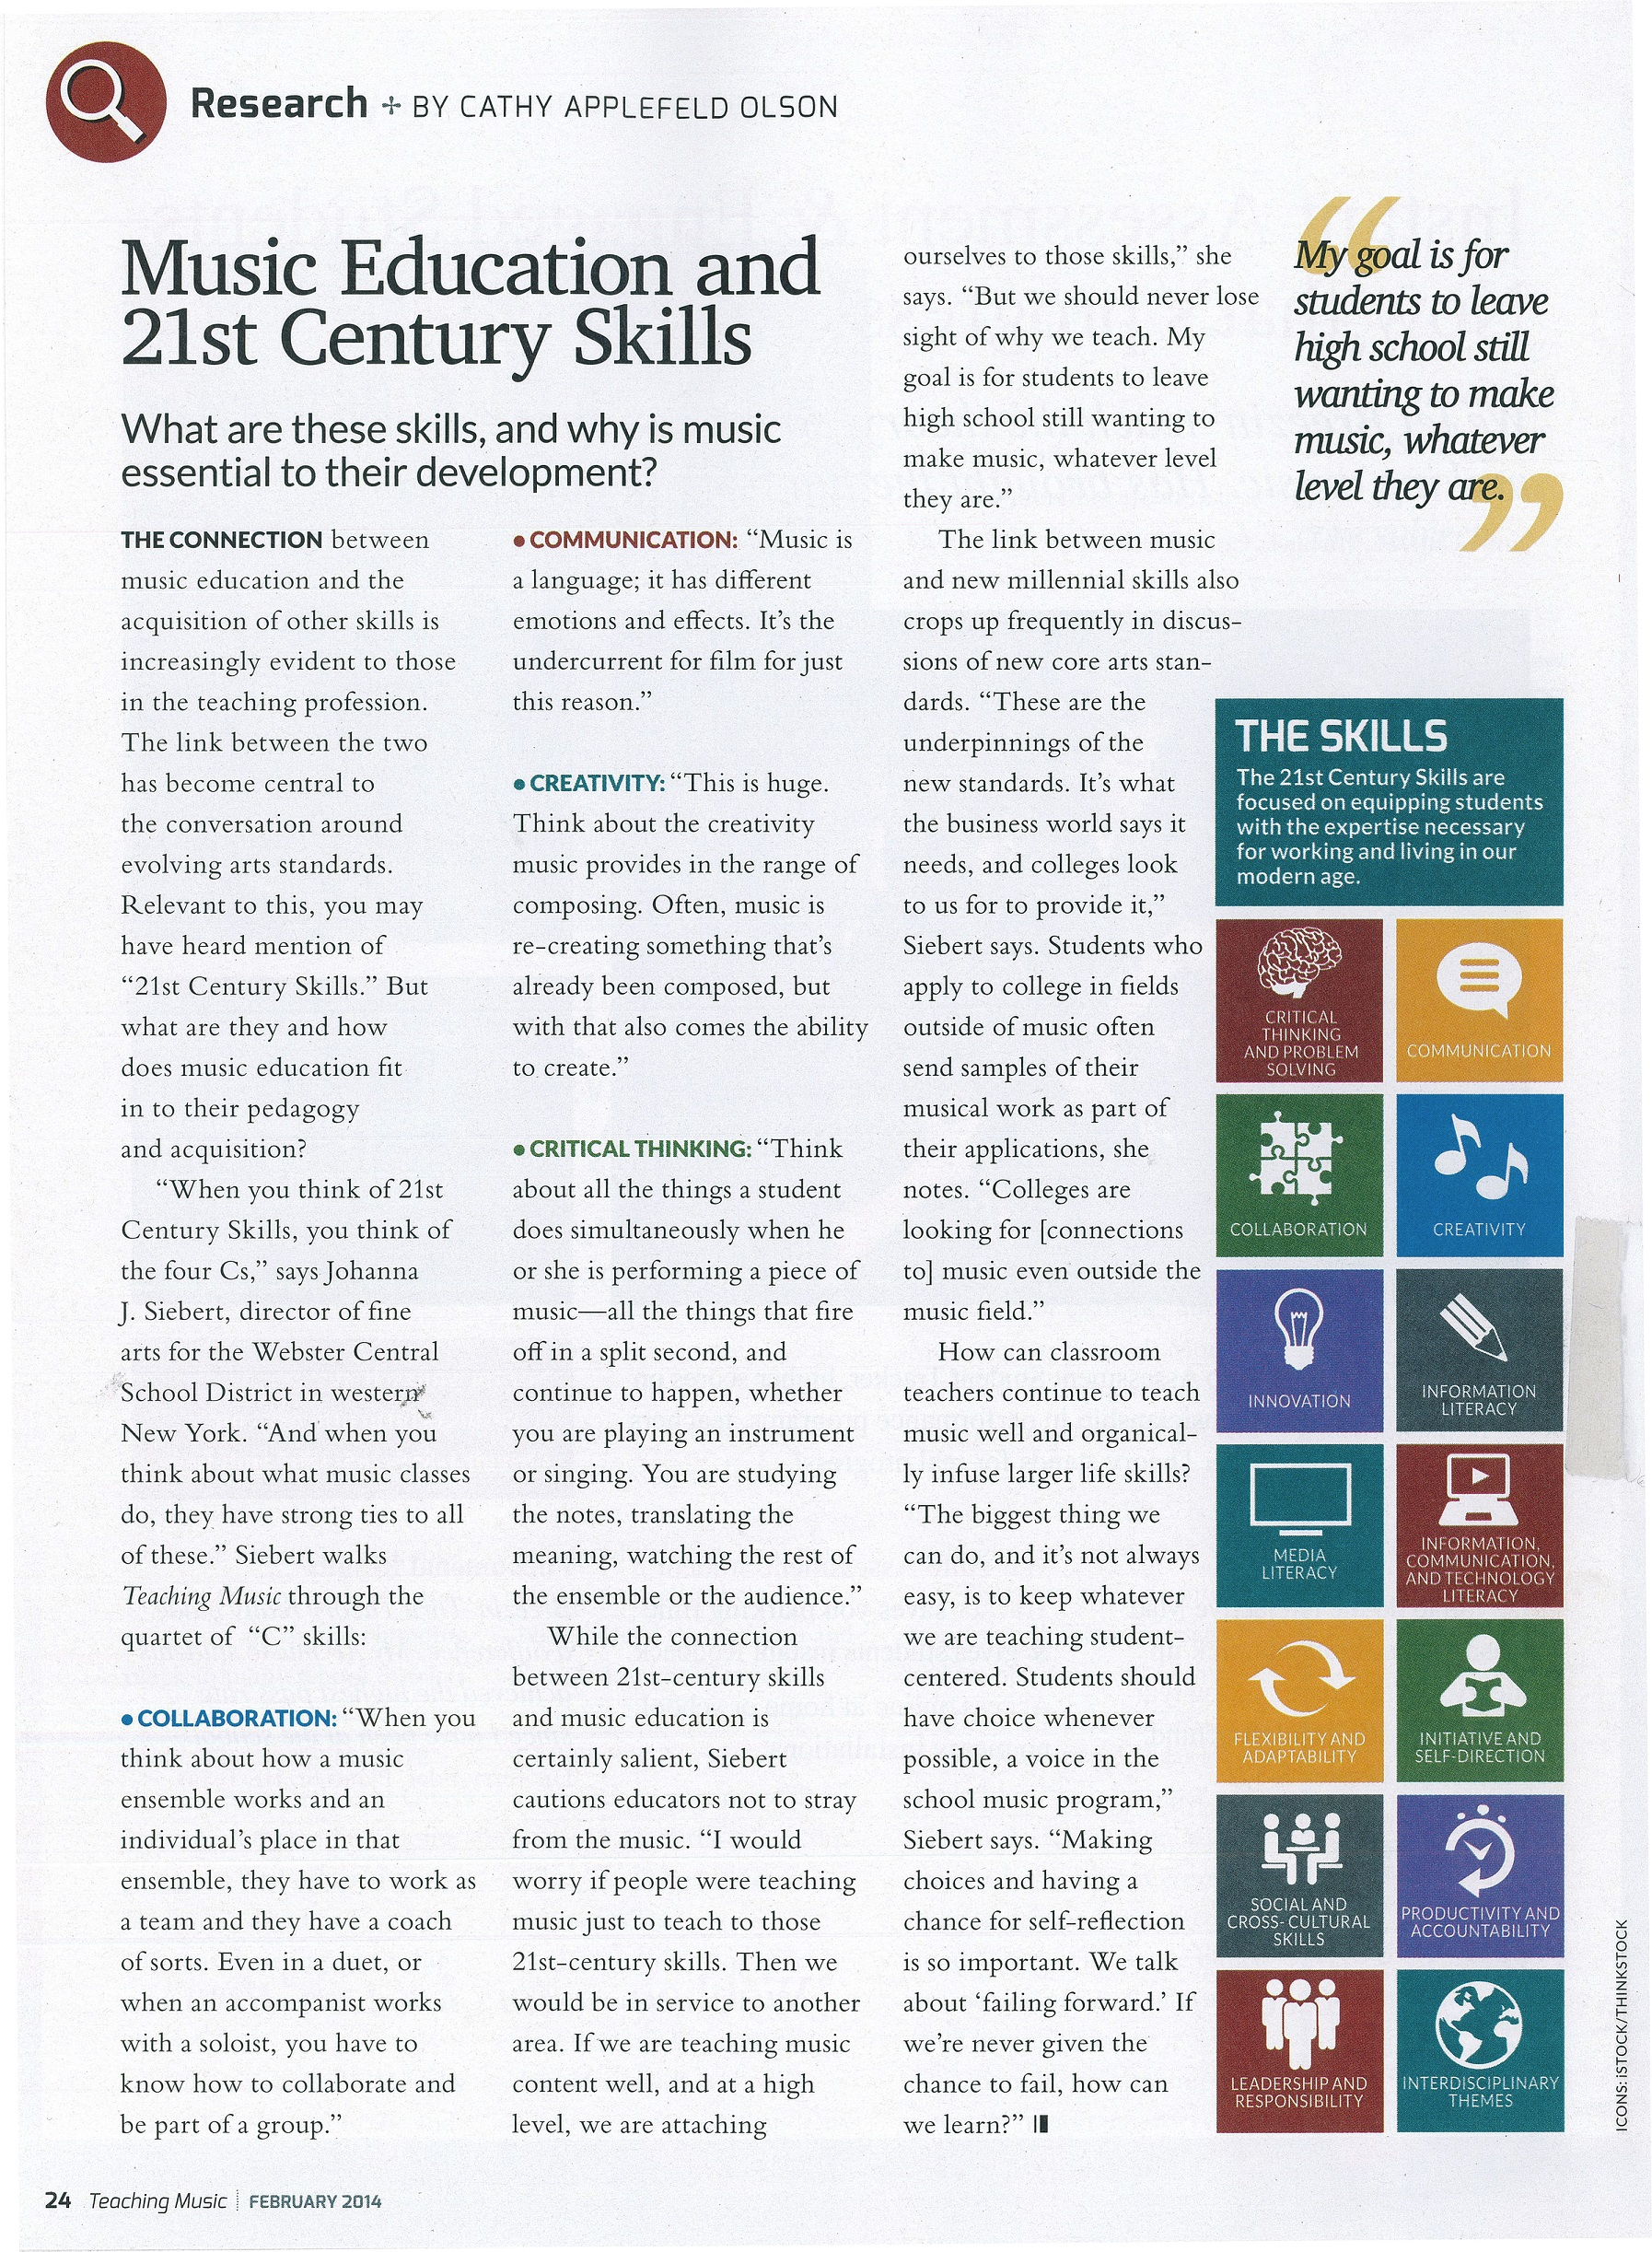 Music Education and 21st Century Skills